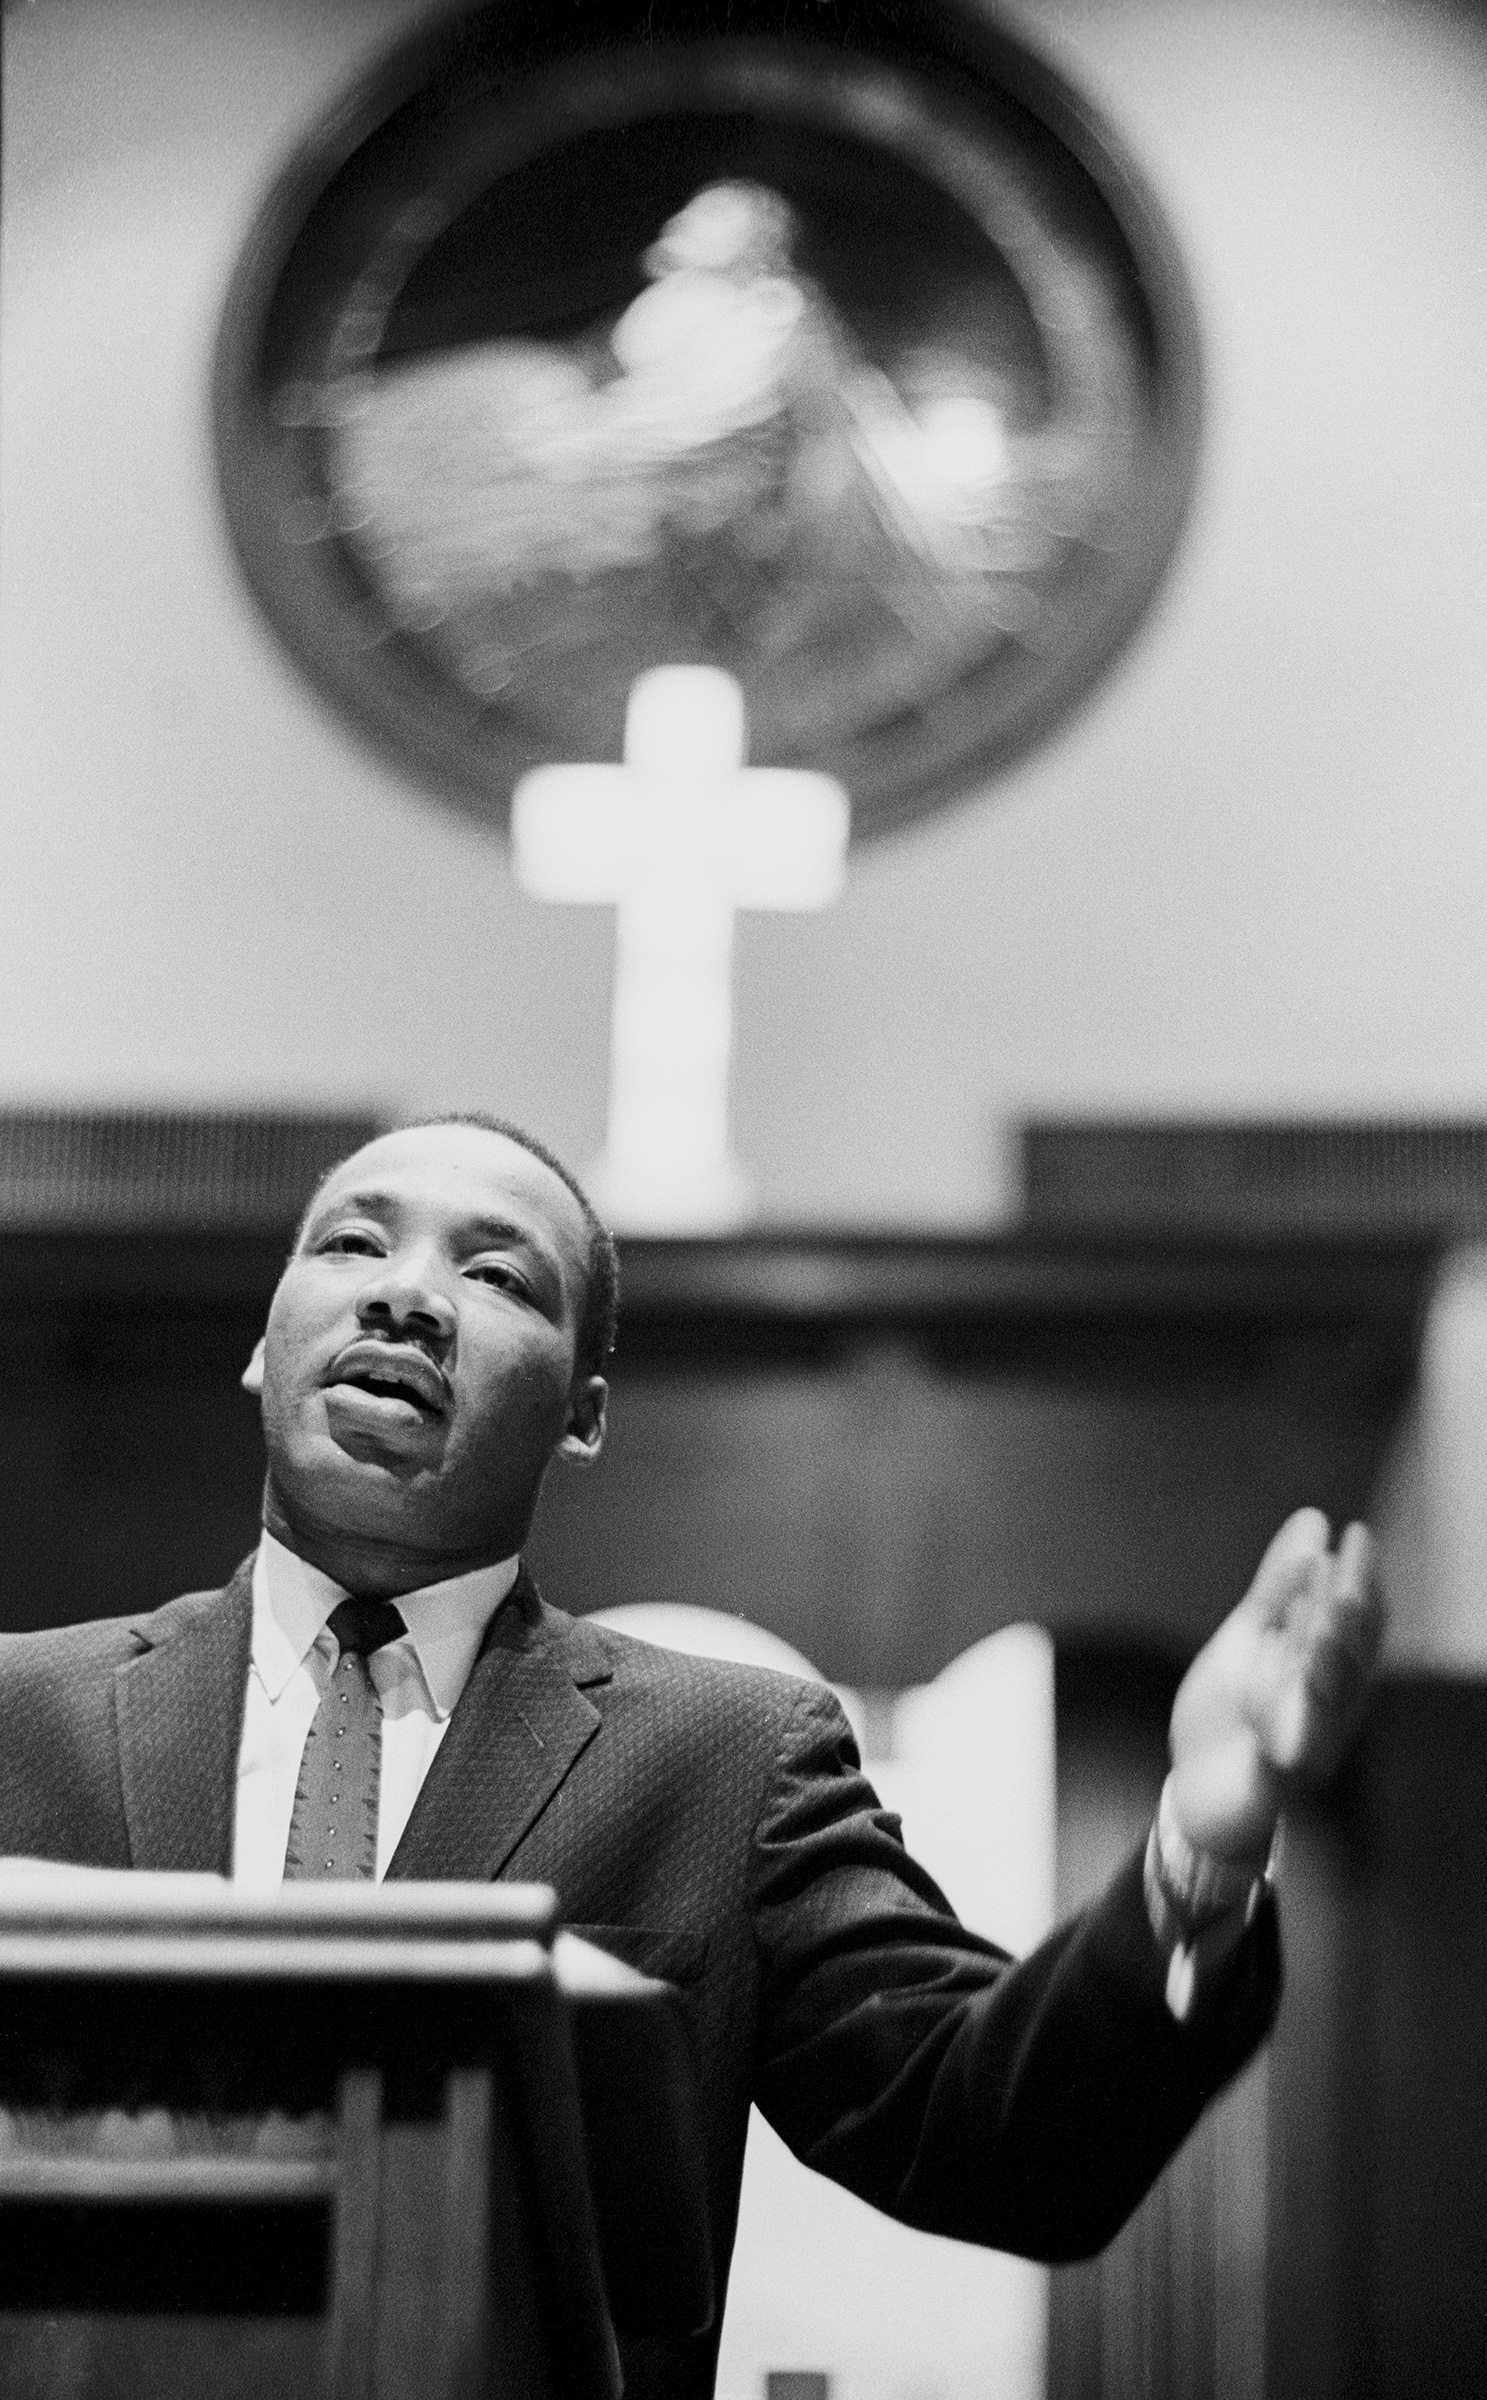 Dr. Martin Luther King Jr. preaching at the Ebenezer Baptist Church in Atlanta, circa 1960.